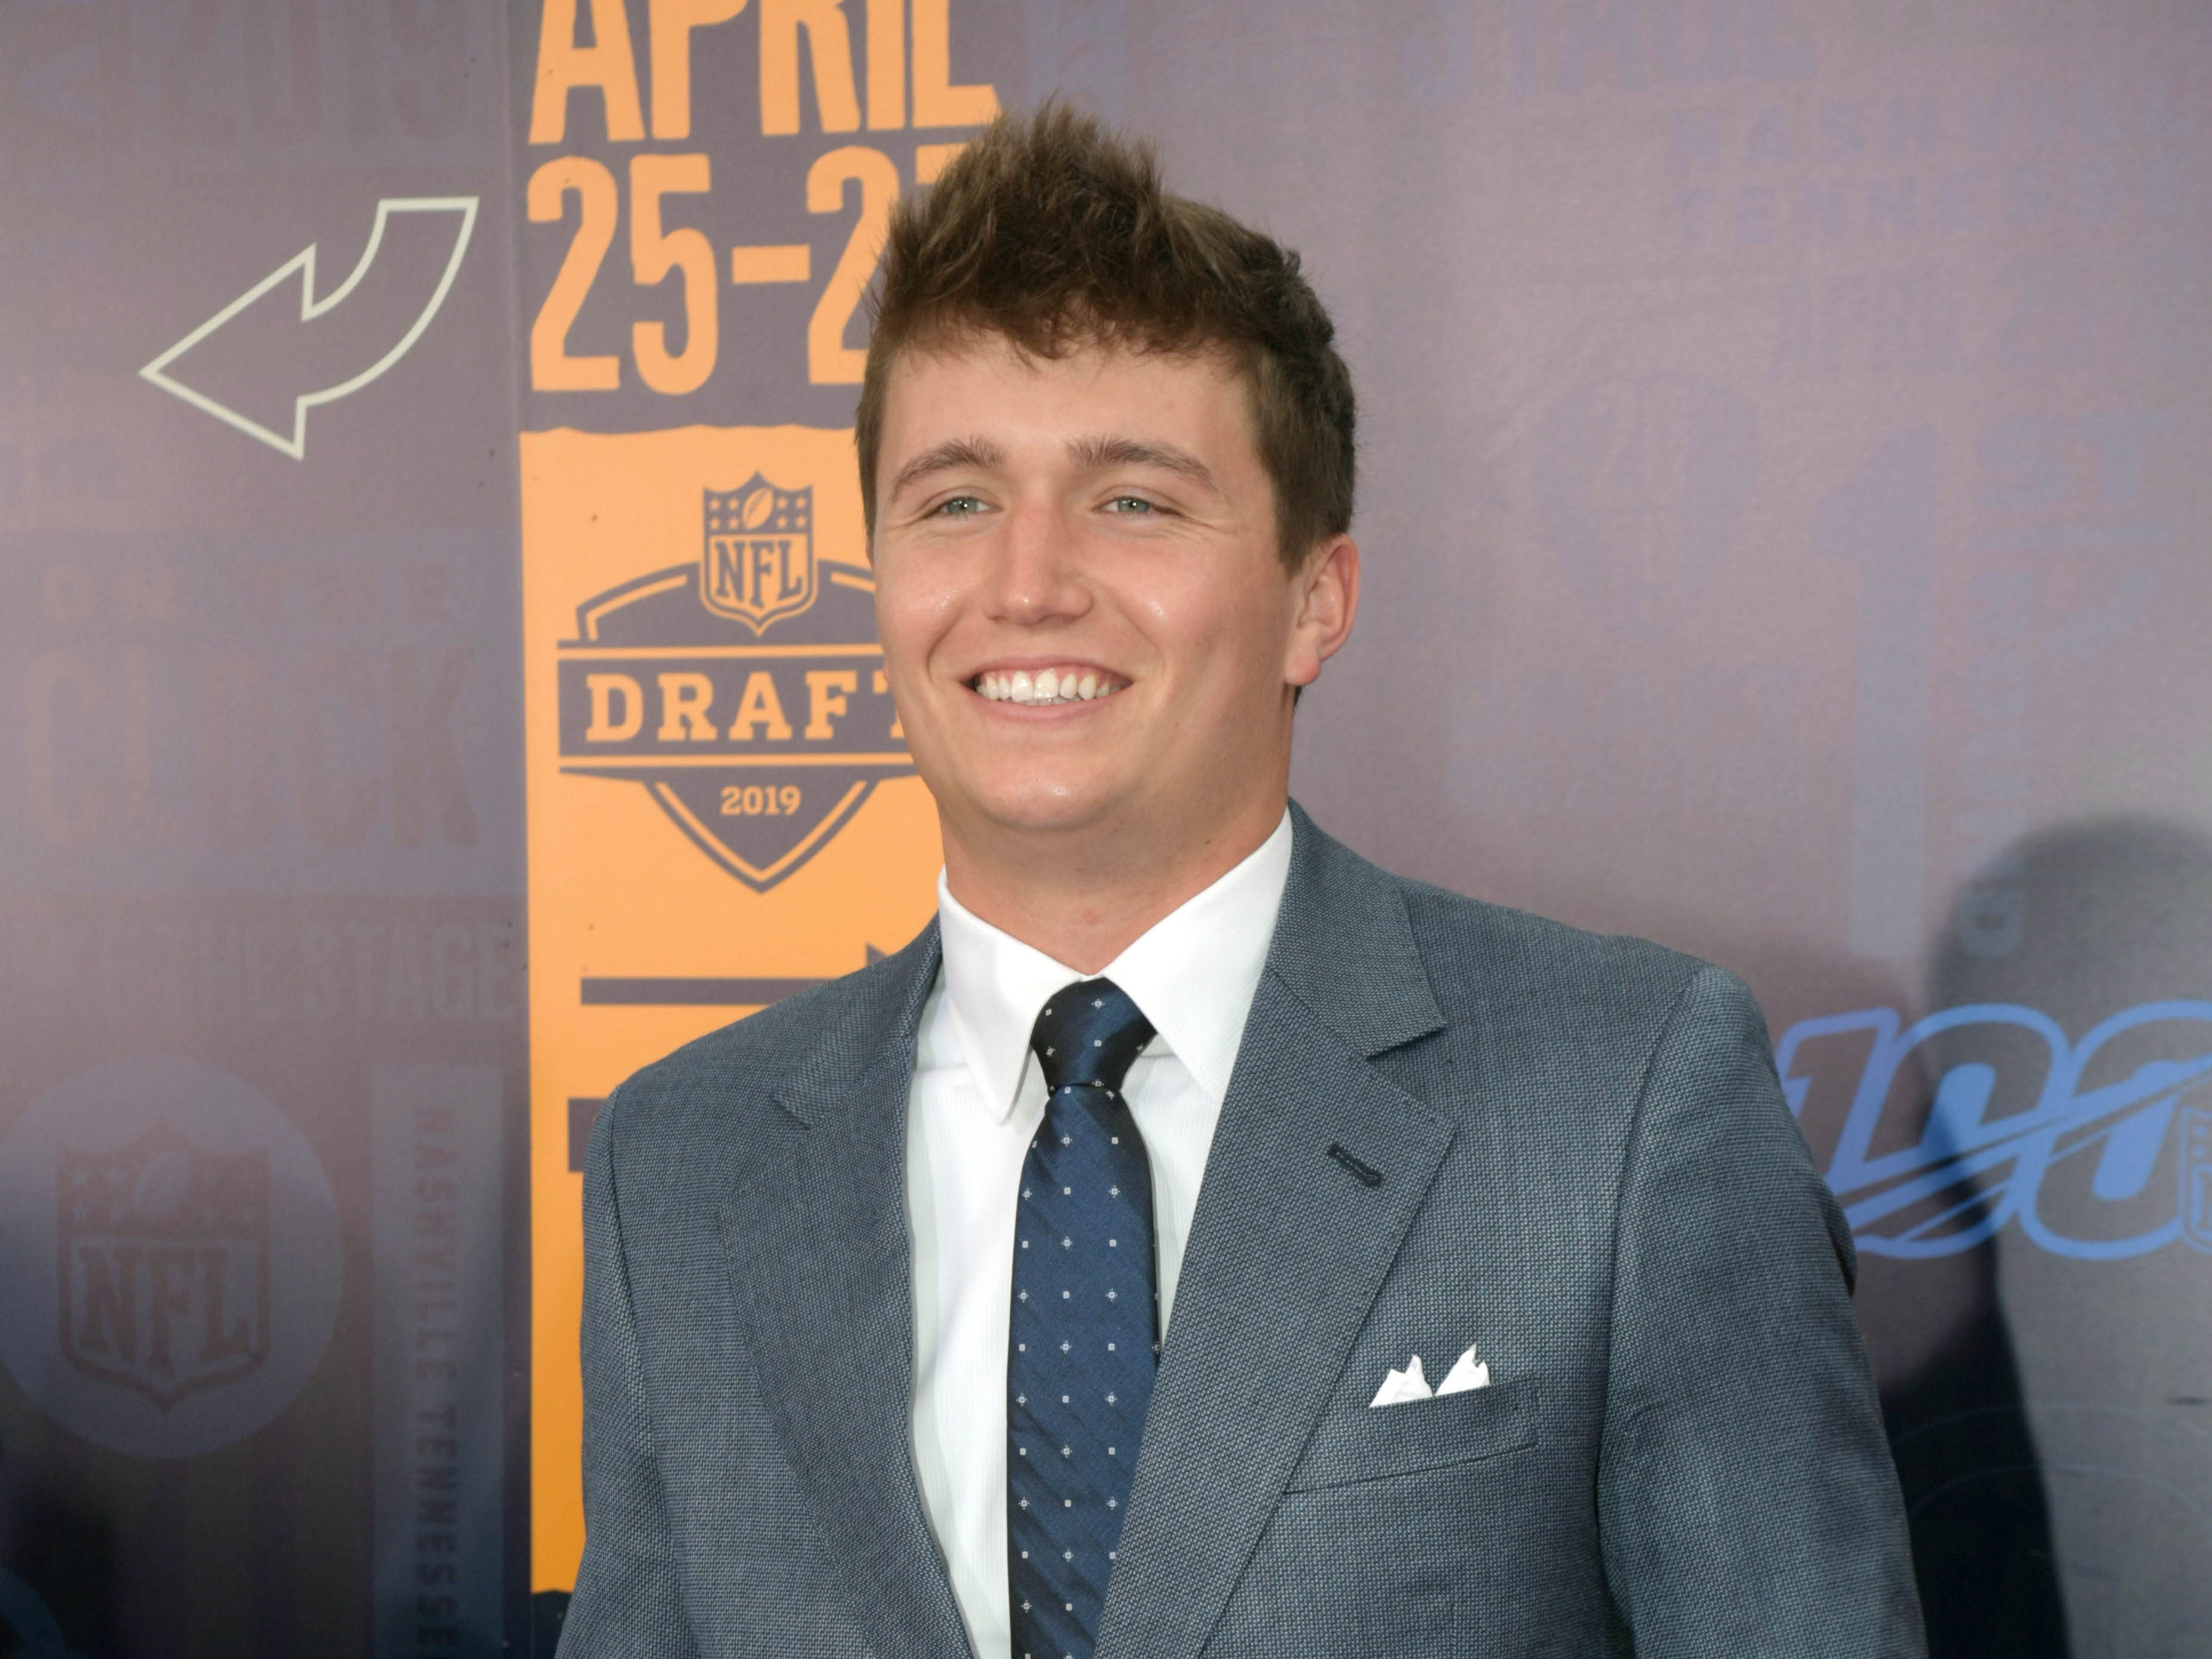 Drew Lock (of Missouri) on the red carpet prior to the first round of the 2019 NFL draft in downtown Nashville.